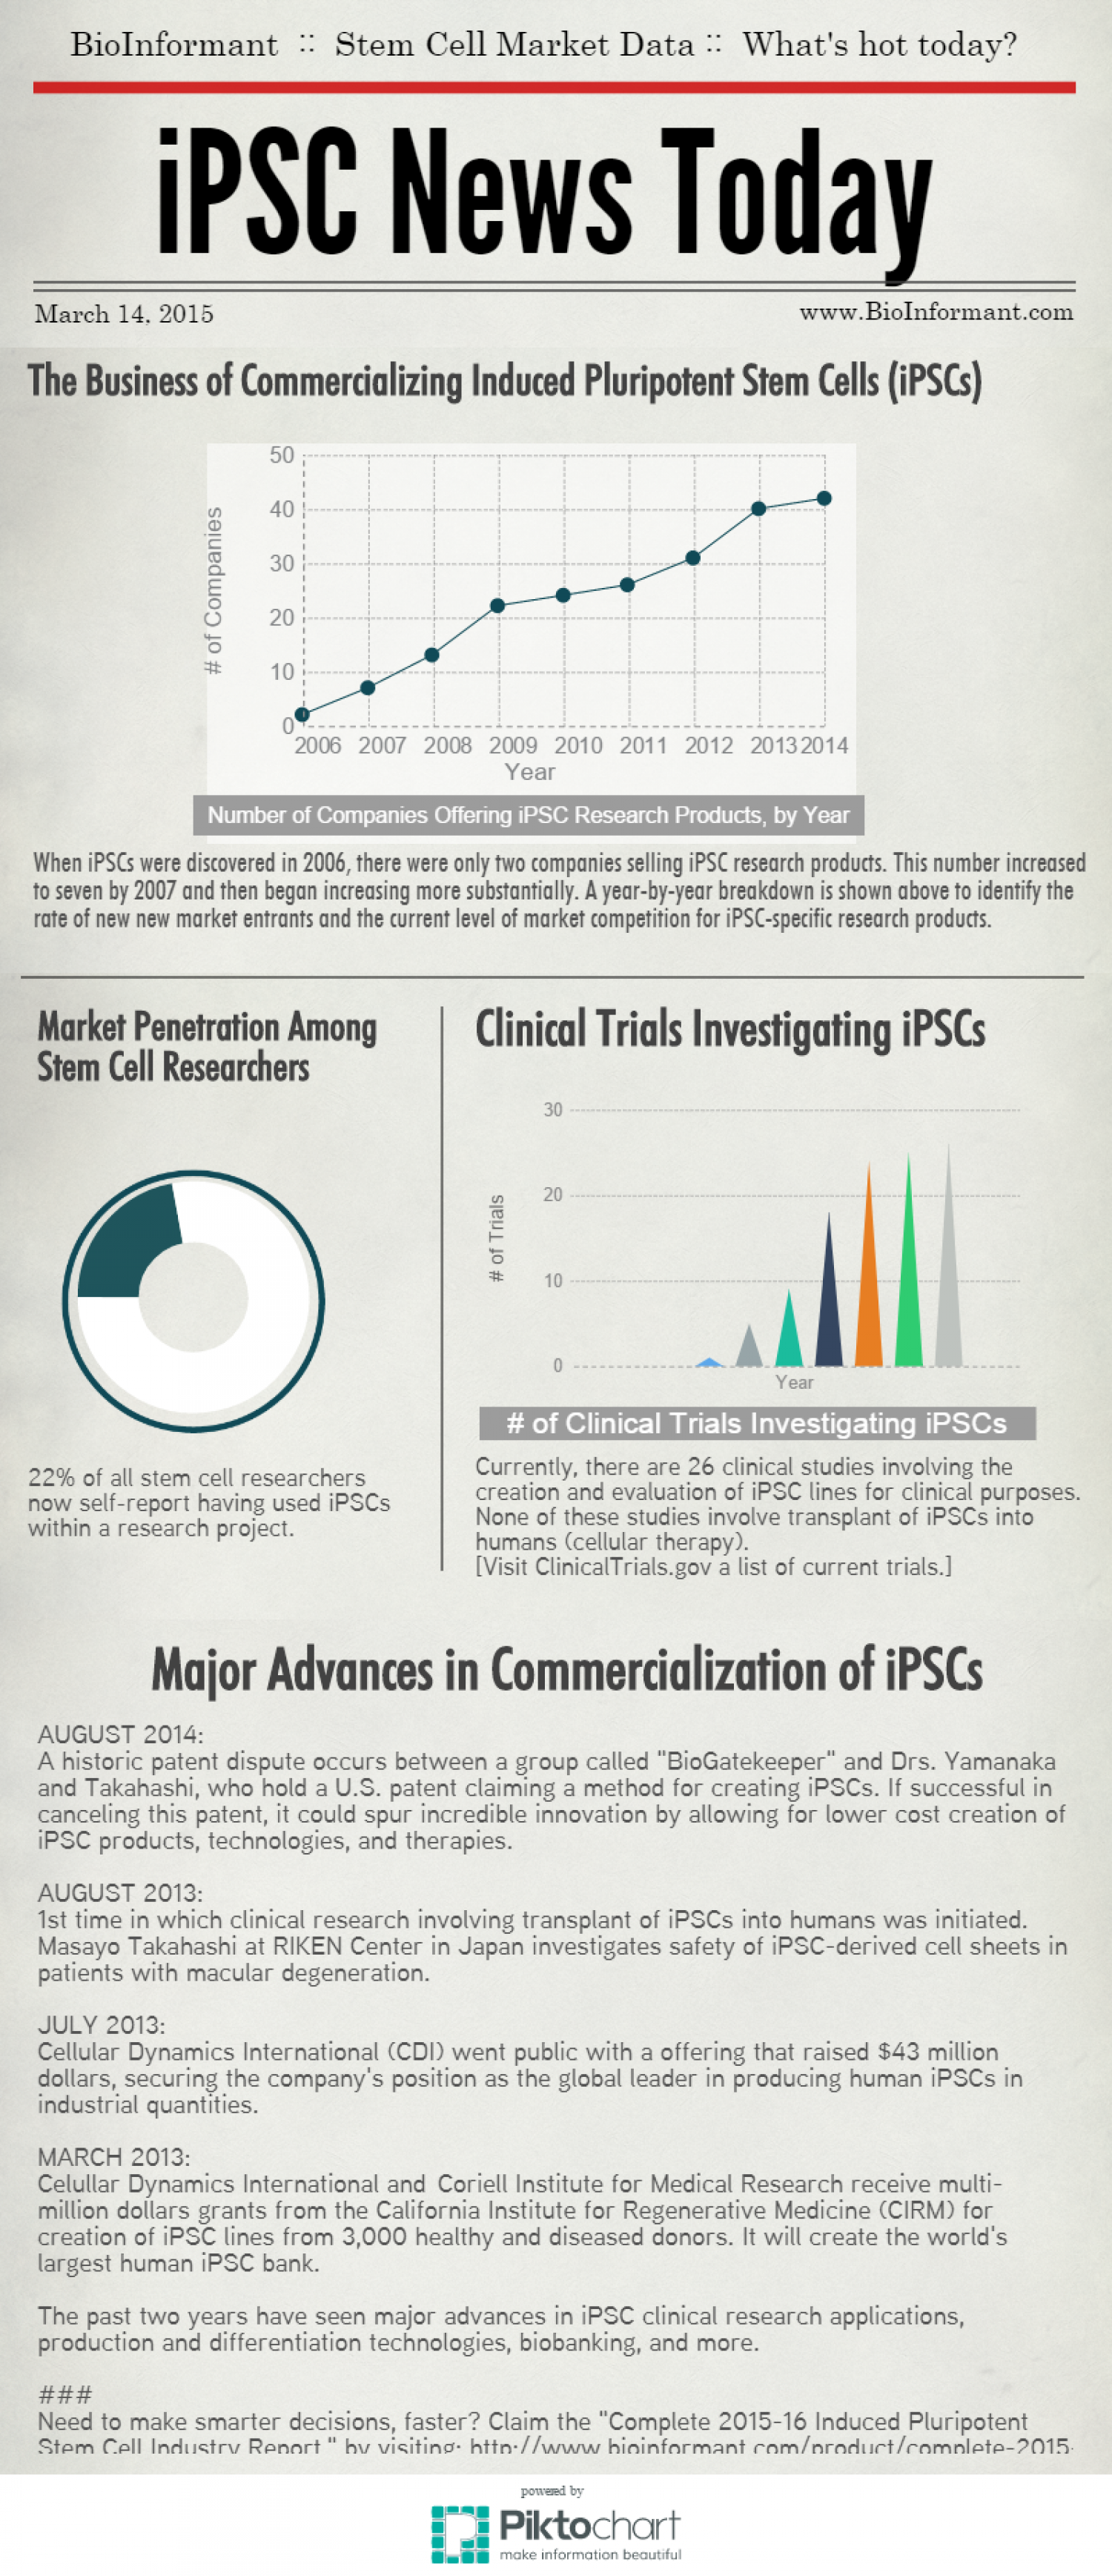 Complete 2015-16 Induced Pluripotent Stem Cell (iPSC) Industry Report Infographic